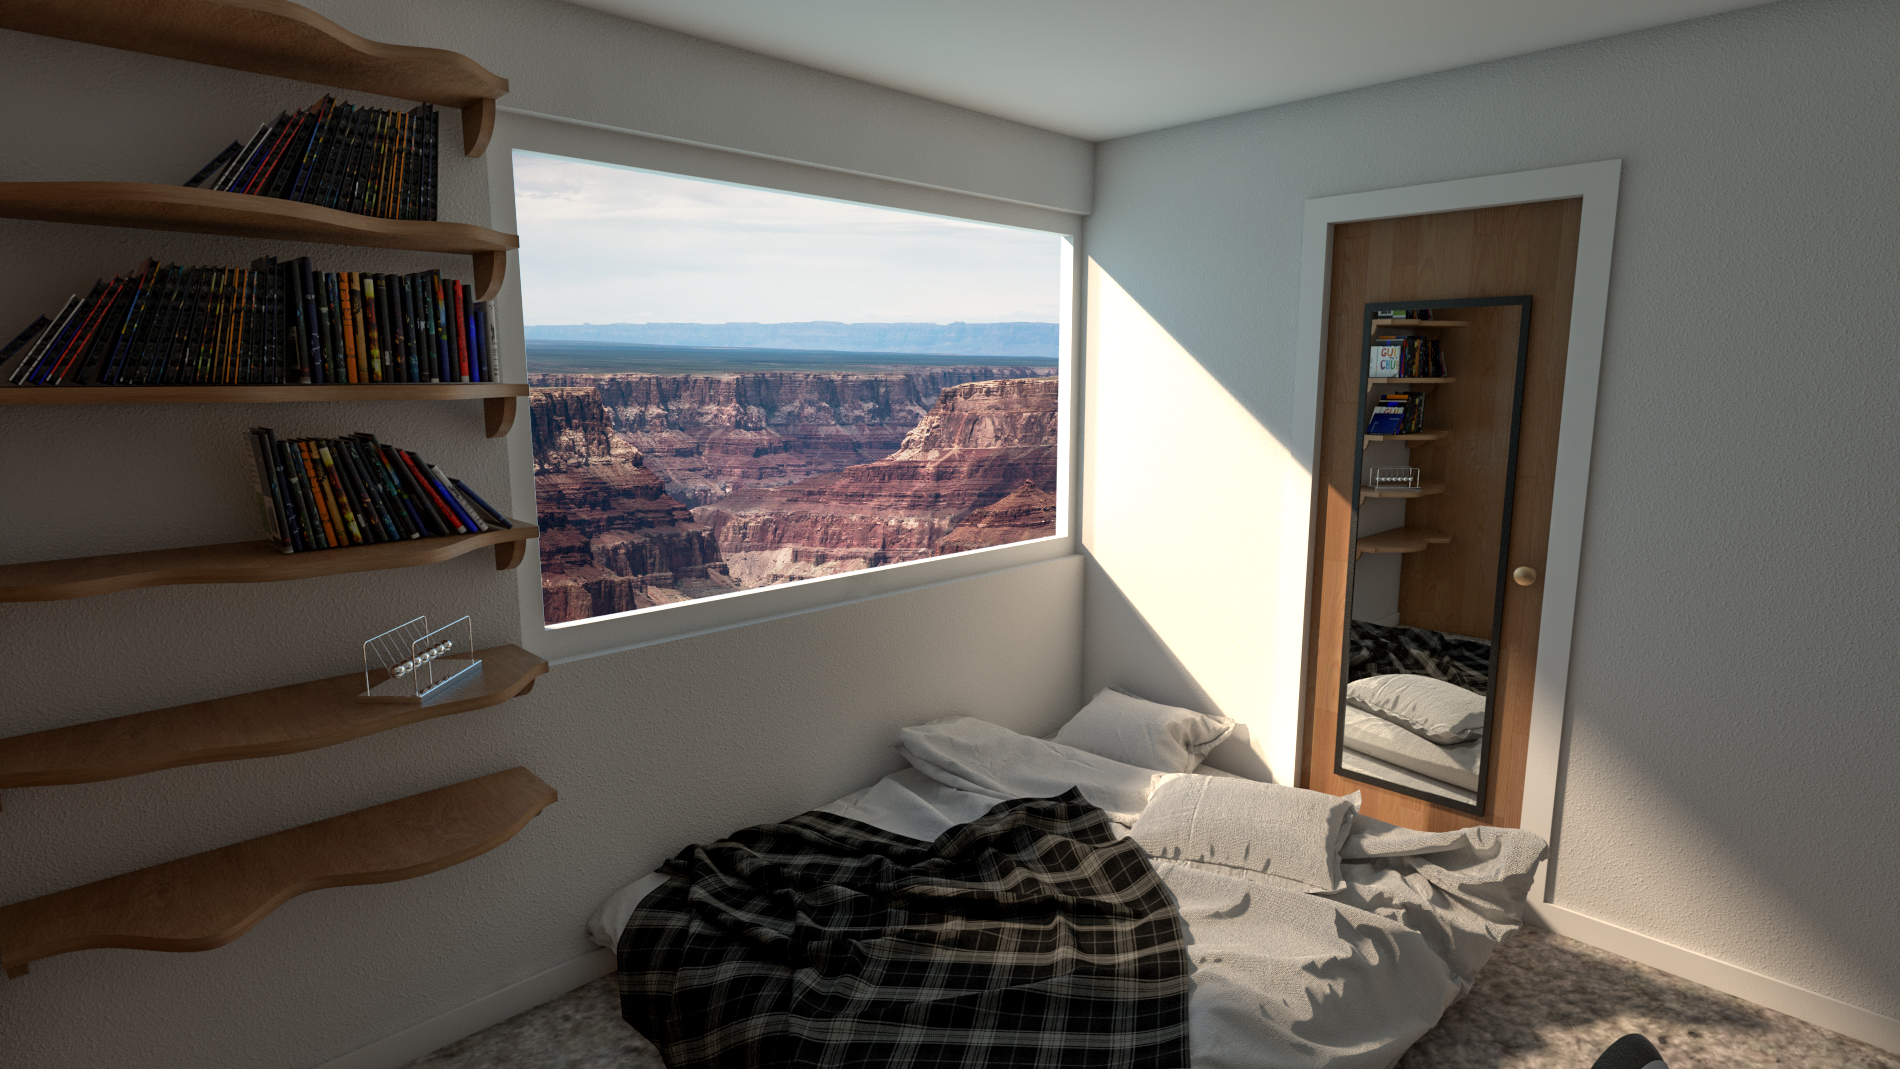 Added A larger window and shelving unit, and changed the location of the room to overlook the Grand Canyon. The undulating shelving unit was cut from a randomized polysurface.